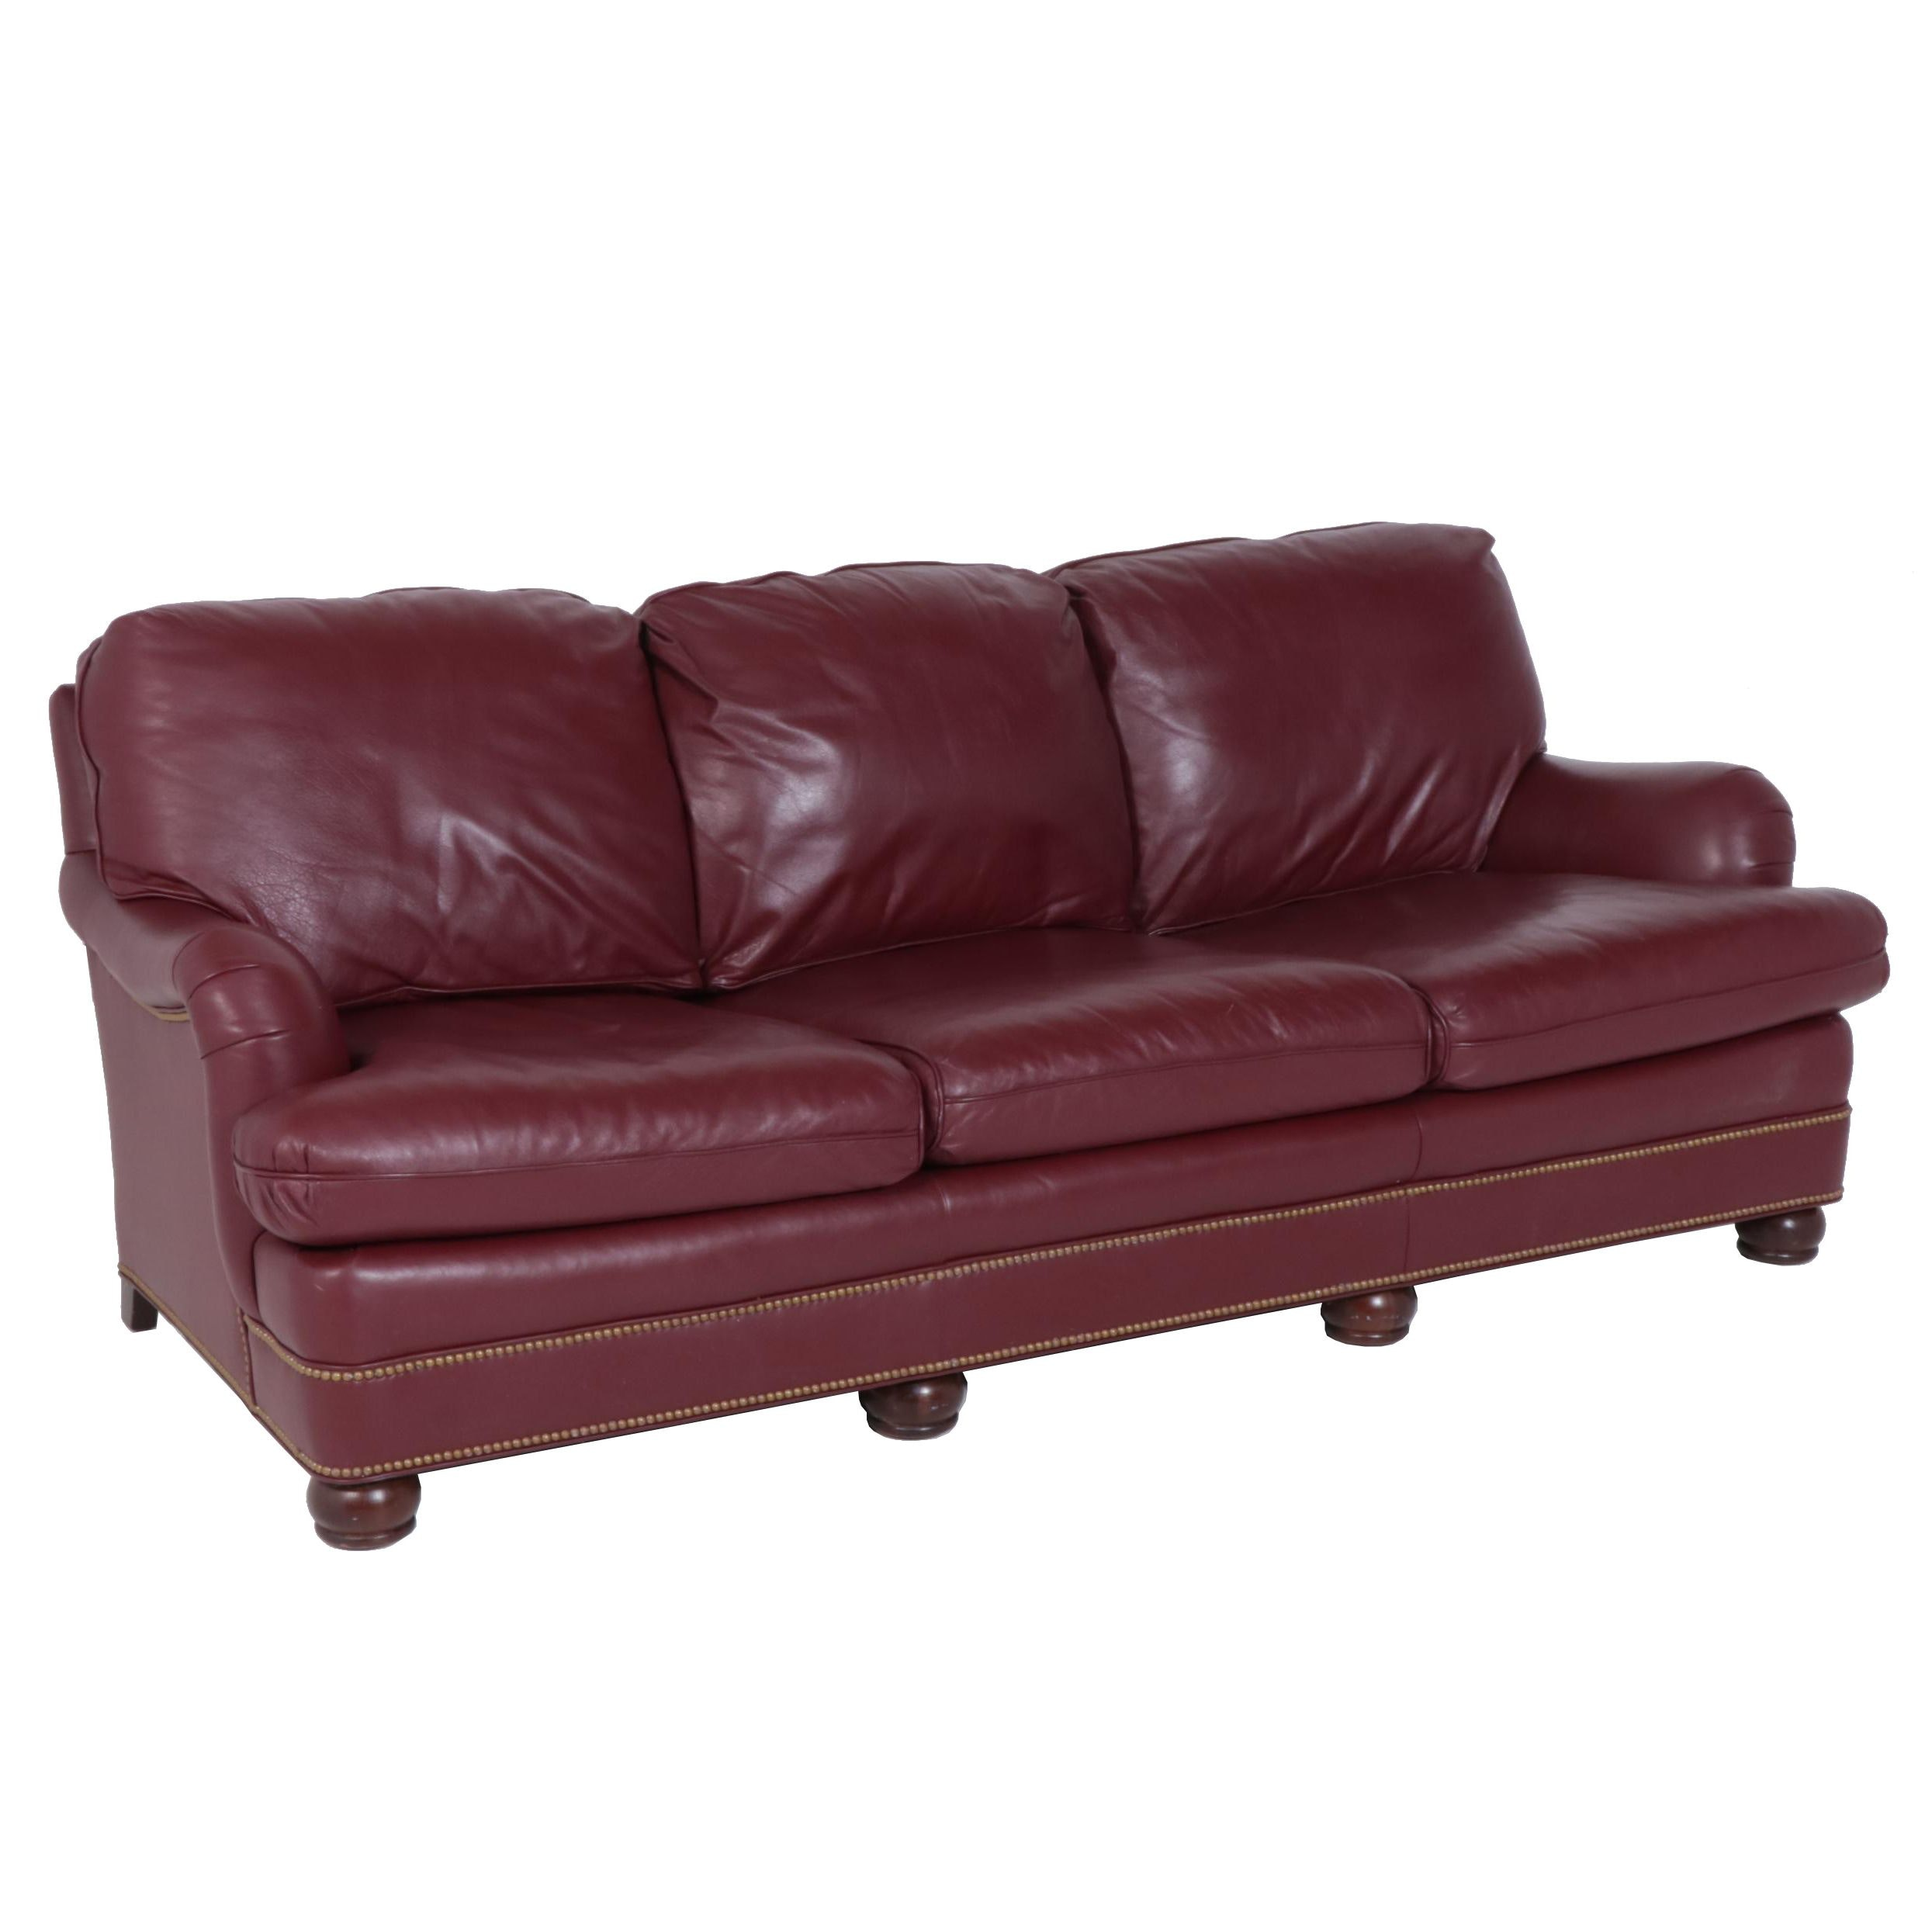 Hancock & Moore Red Leather and Wood Sofa, Late 20th Century